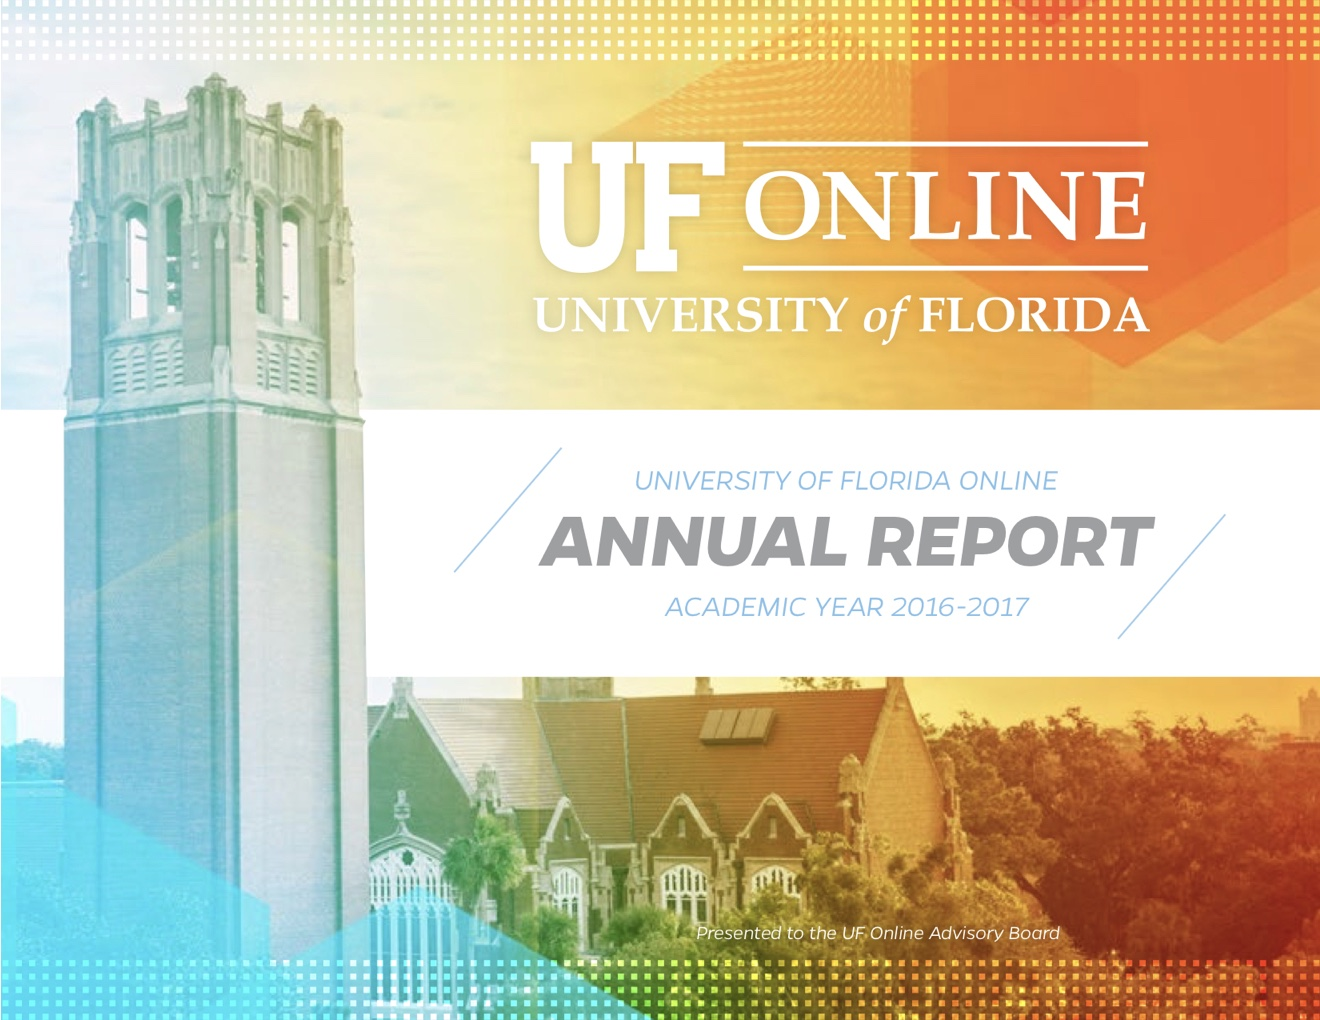 UF Online image of the cover of the UFO 2016-2017 Annual Report